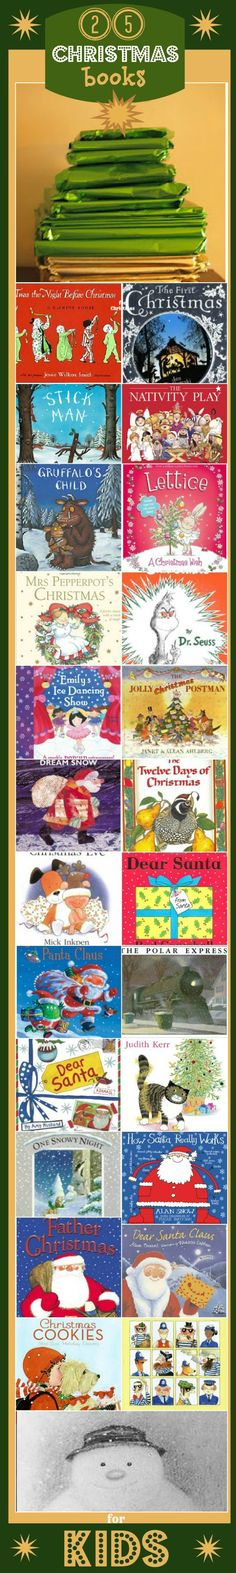 25 CHRISTMAS books for kids. Perfect for ADVENT: create a FUN alternative advent countdown with a festive book every day.